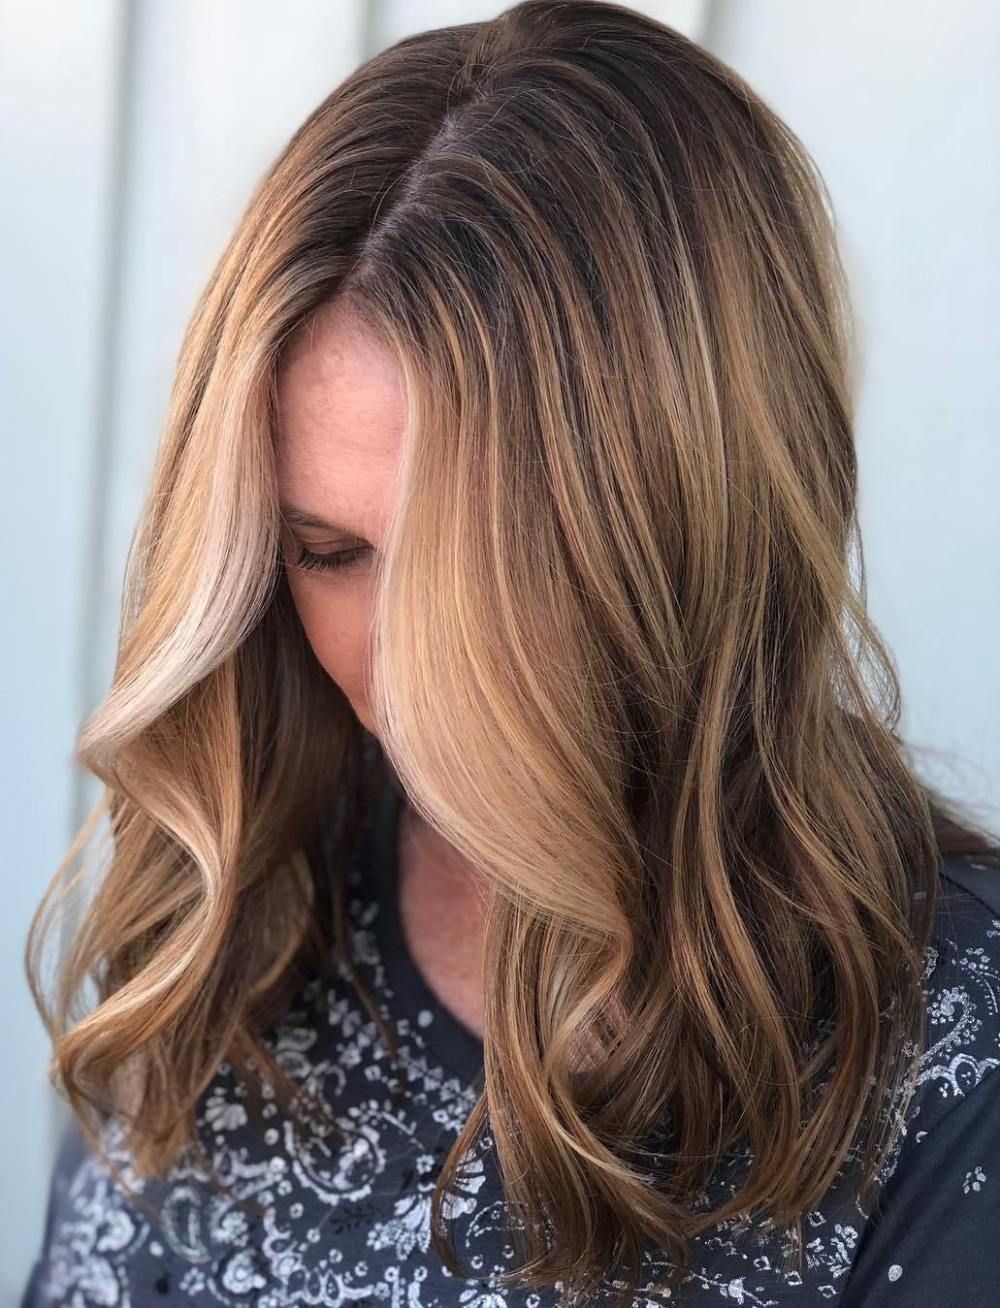 20 Best Hair Colors To Look Younger Instantly Blonde Balayage Cool Hair Color Cool Hairstyles